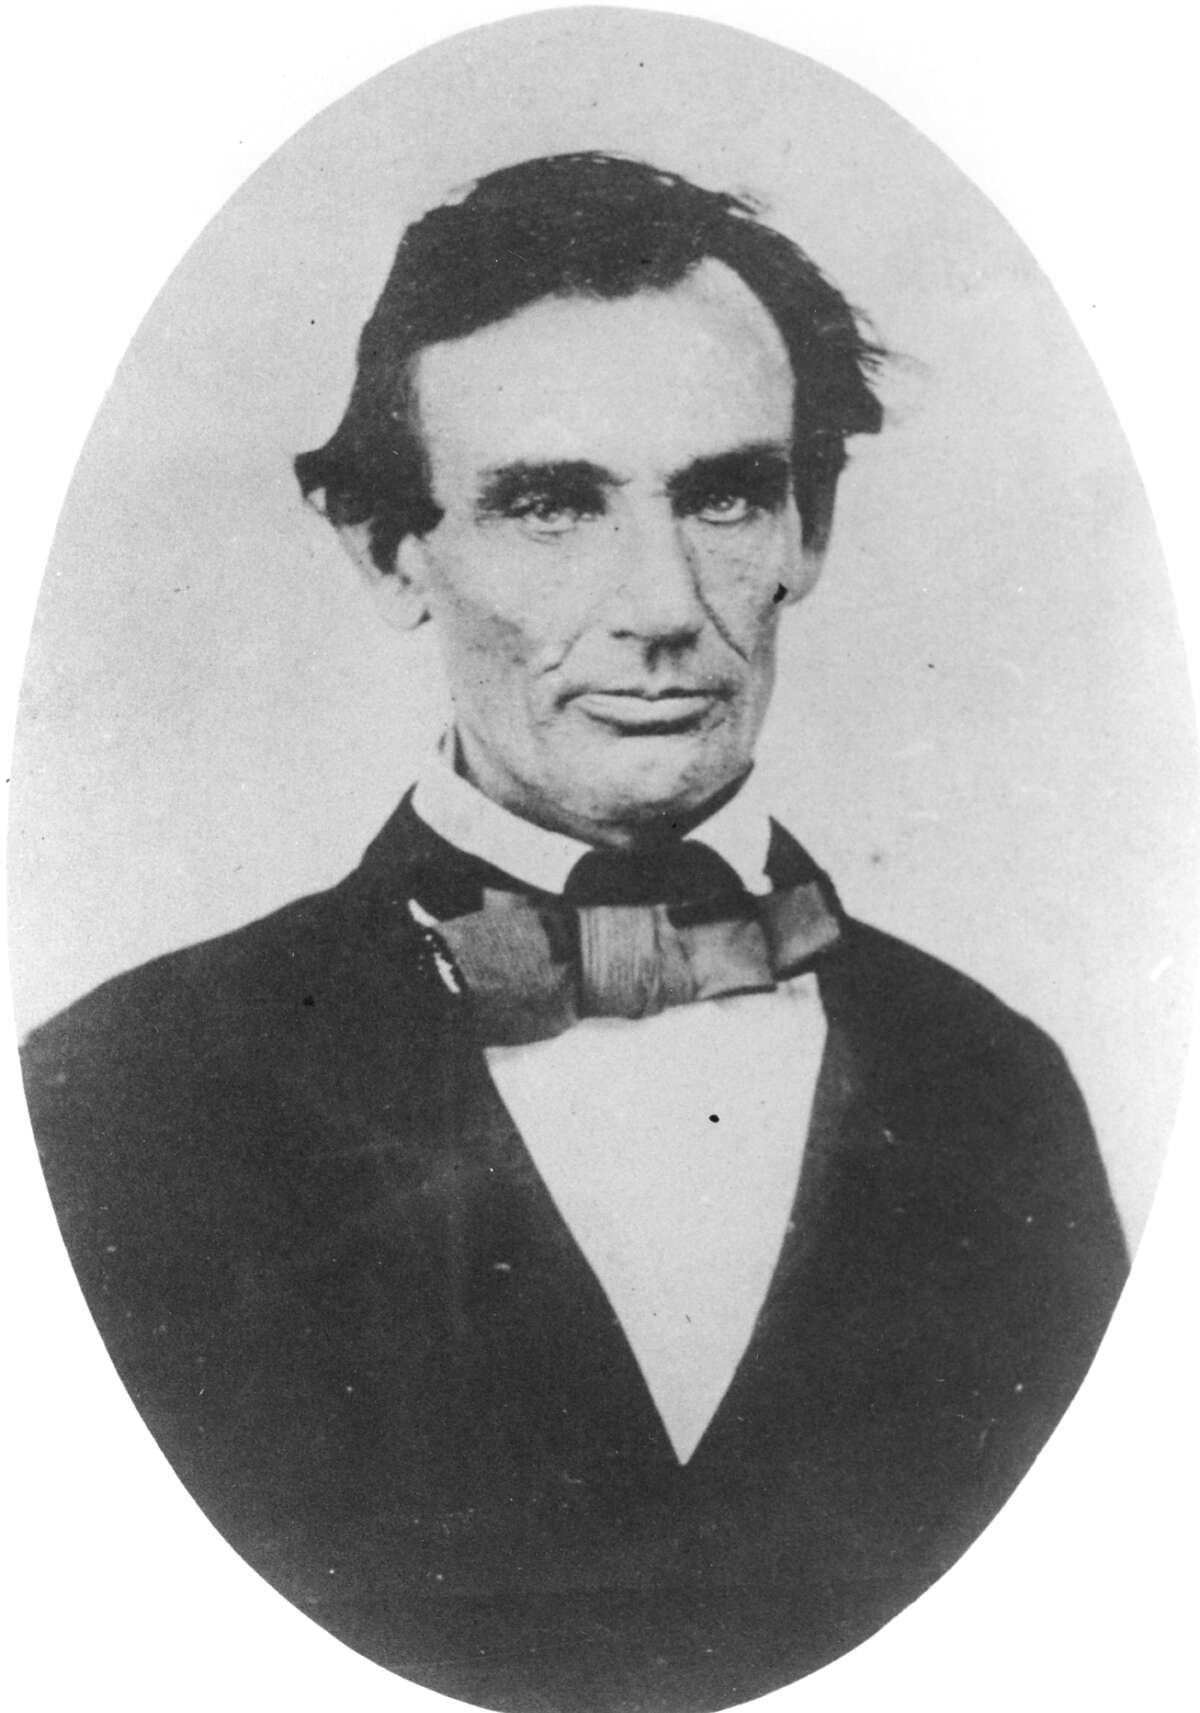 Positions The Republican candidate, Lincoln, argued against allowing slavery in the new territories in the West.Douglas, the Democrat, advocated something called